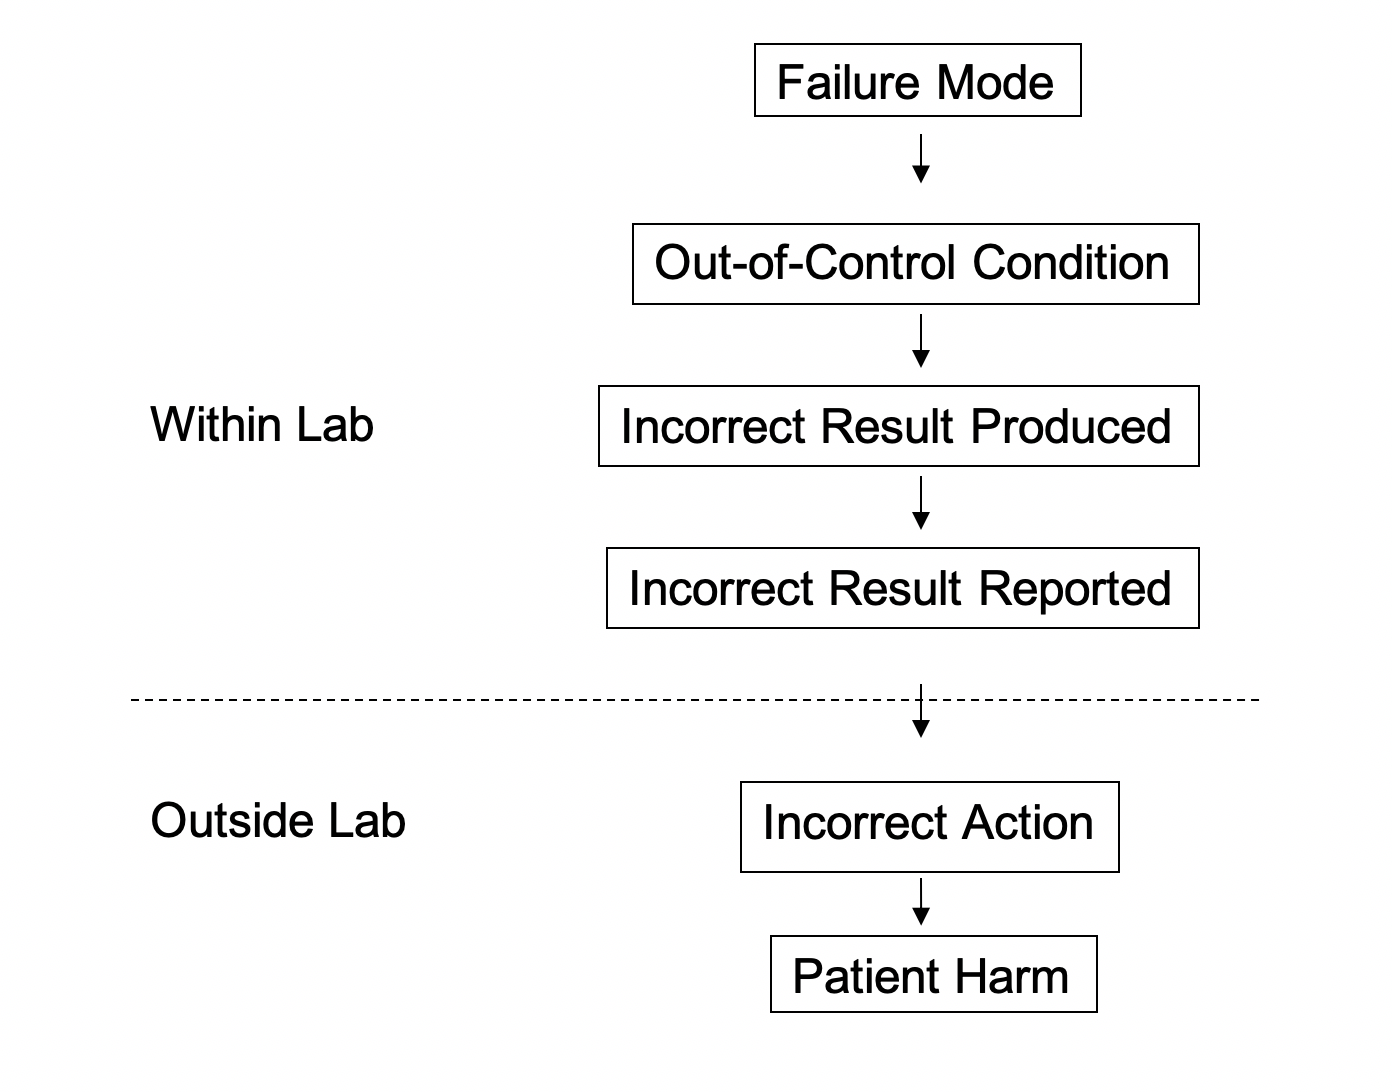 Fig. 1 Sequence of Events Leading to Patient Harm